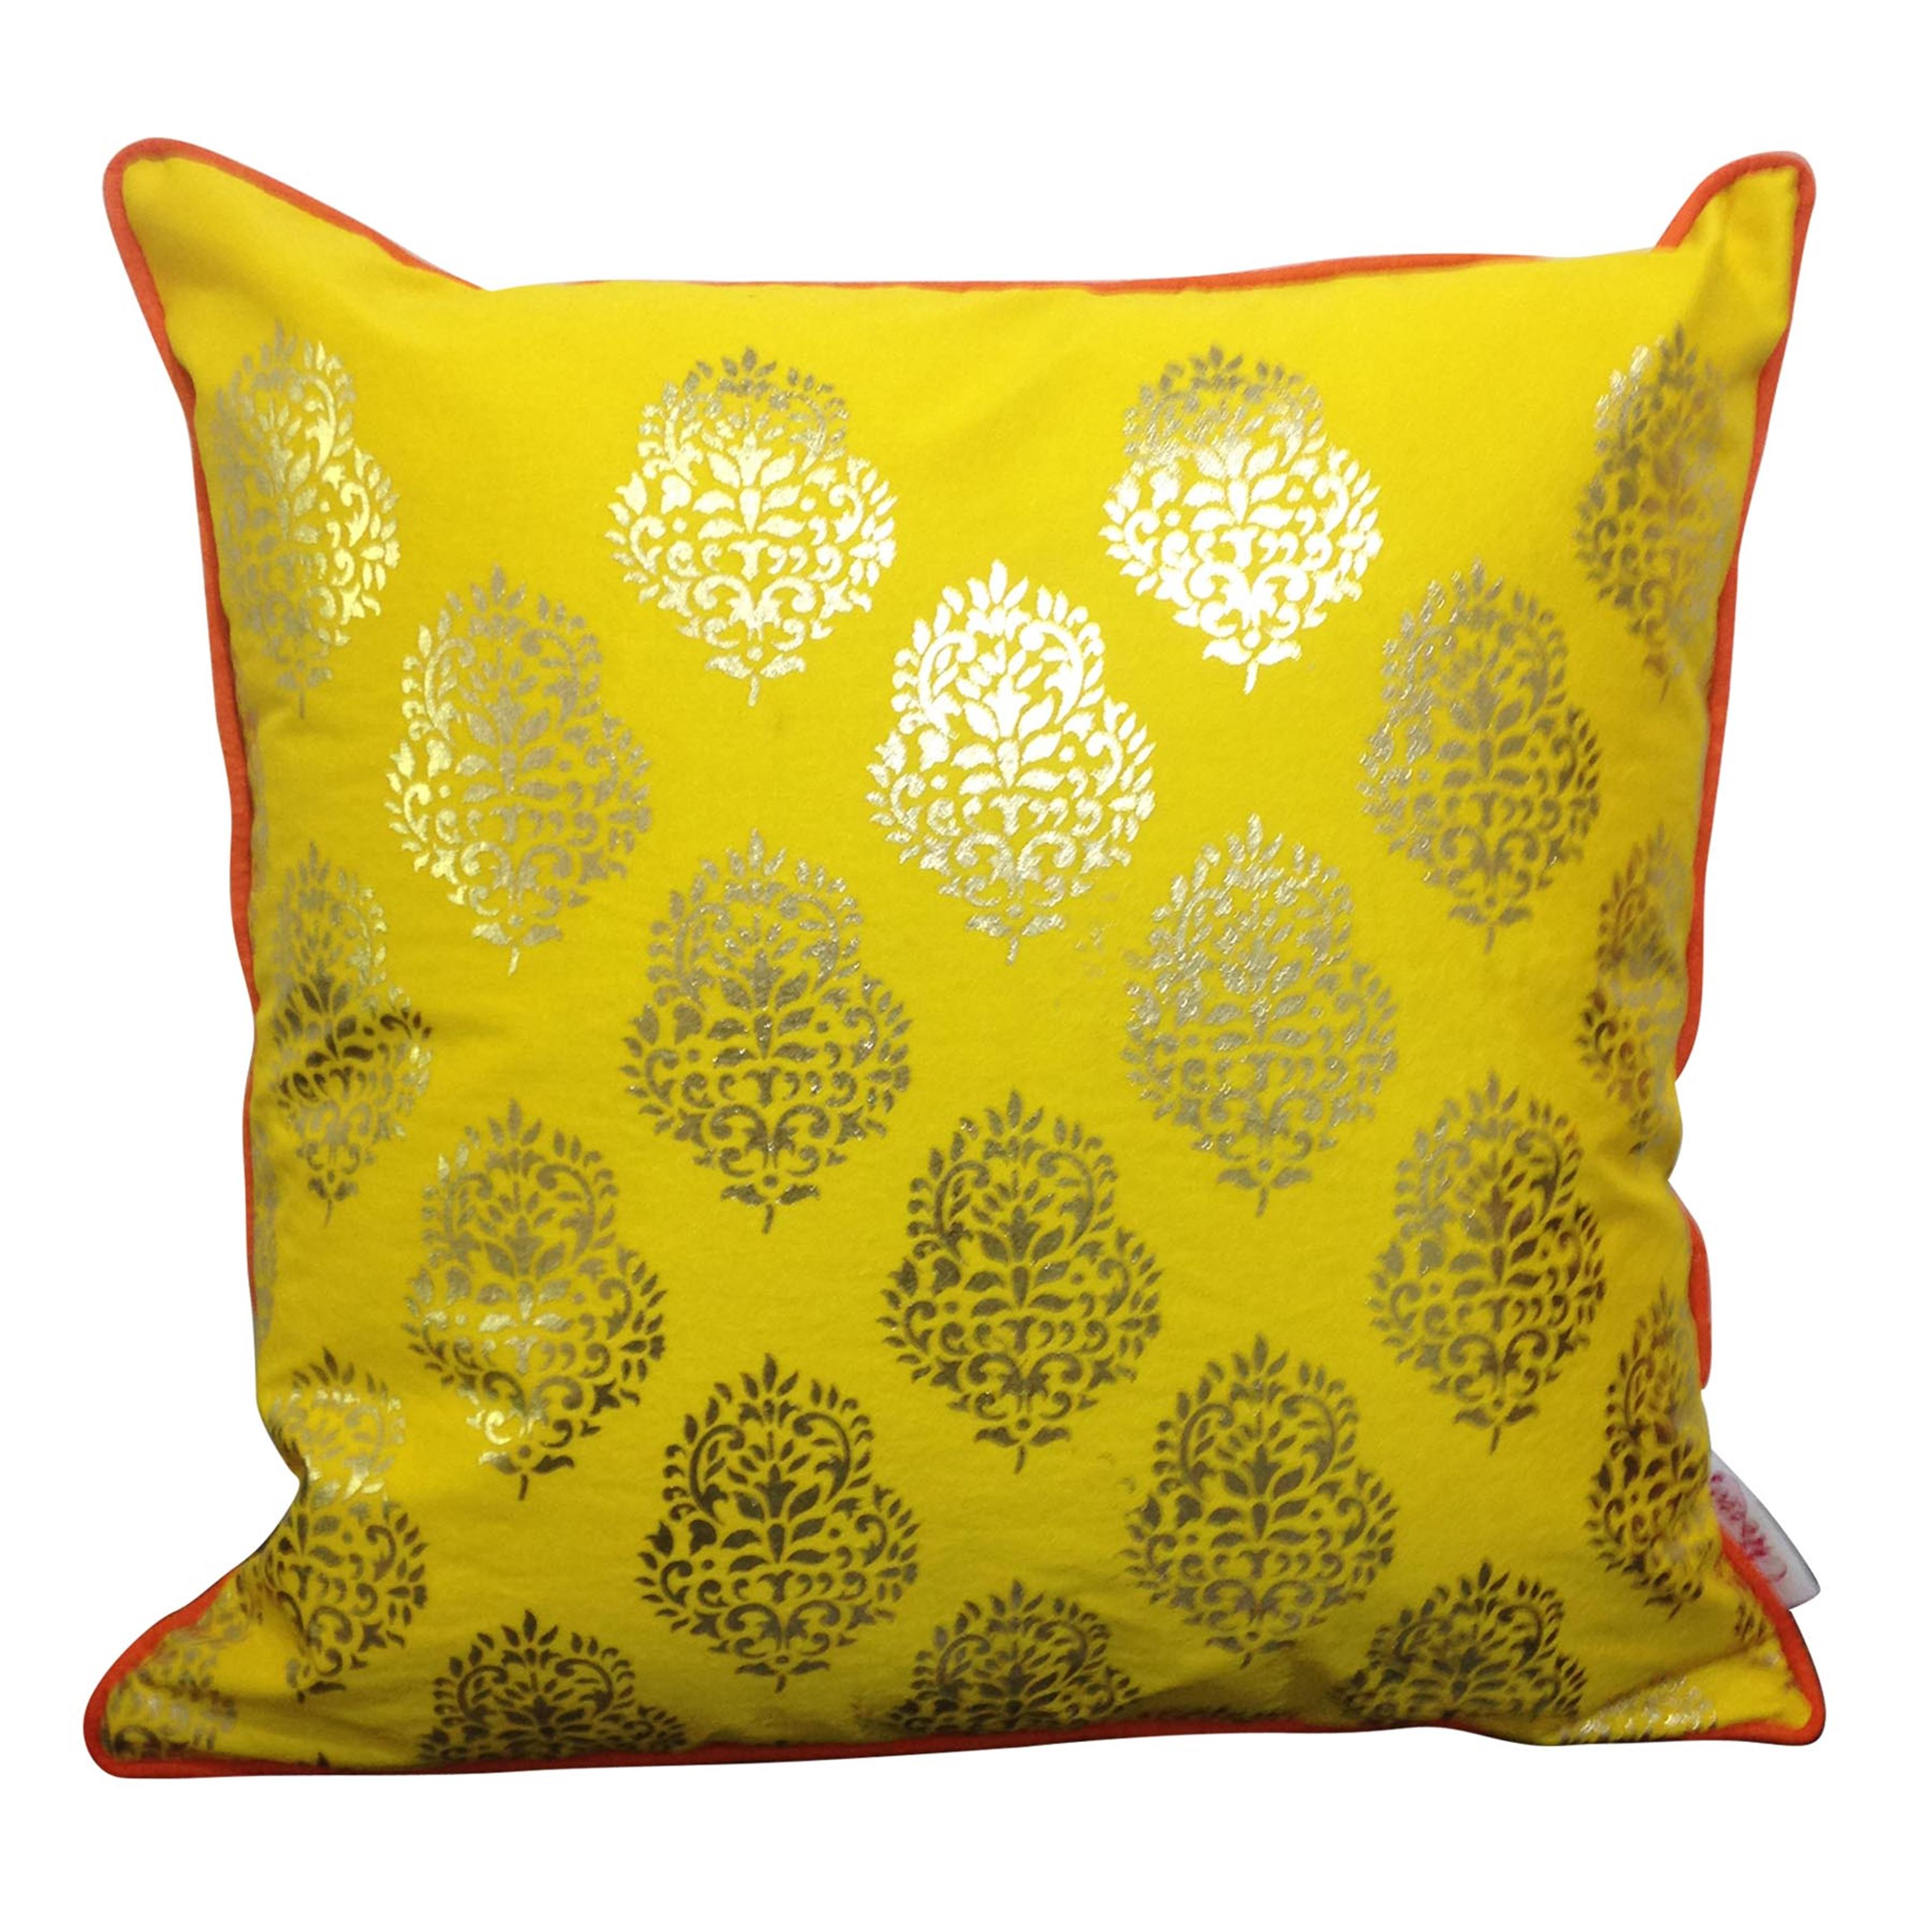 Double Sided Yellow Gold Motif Cushion Cover